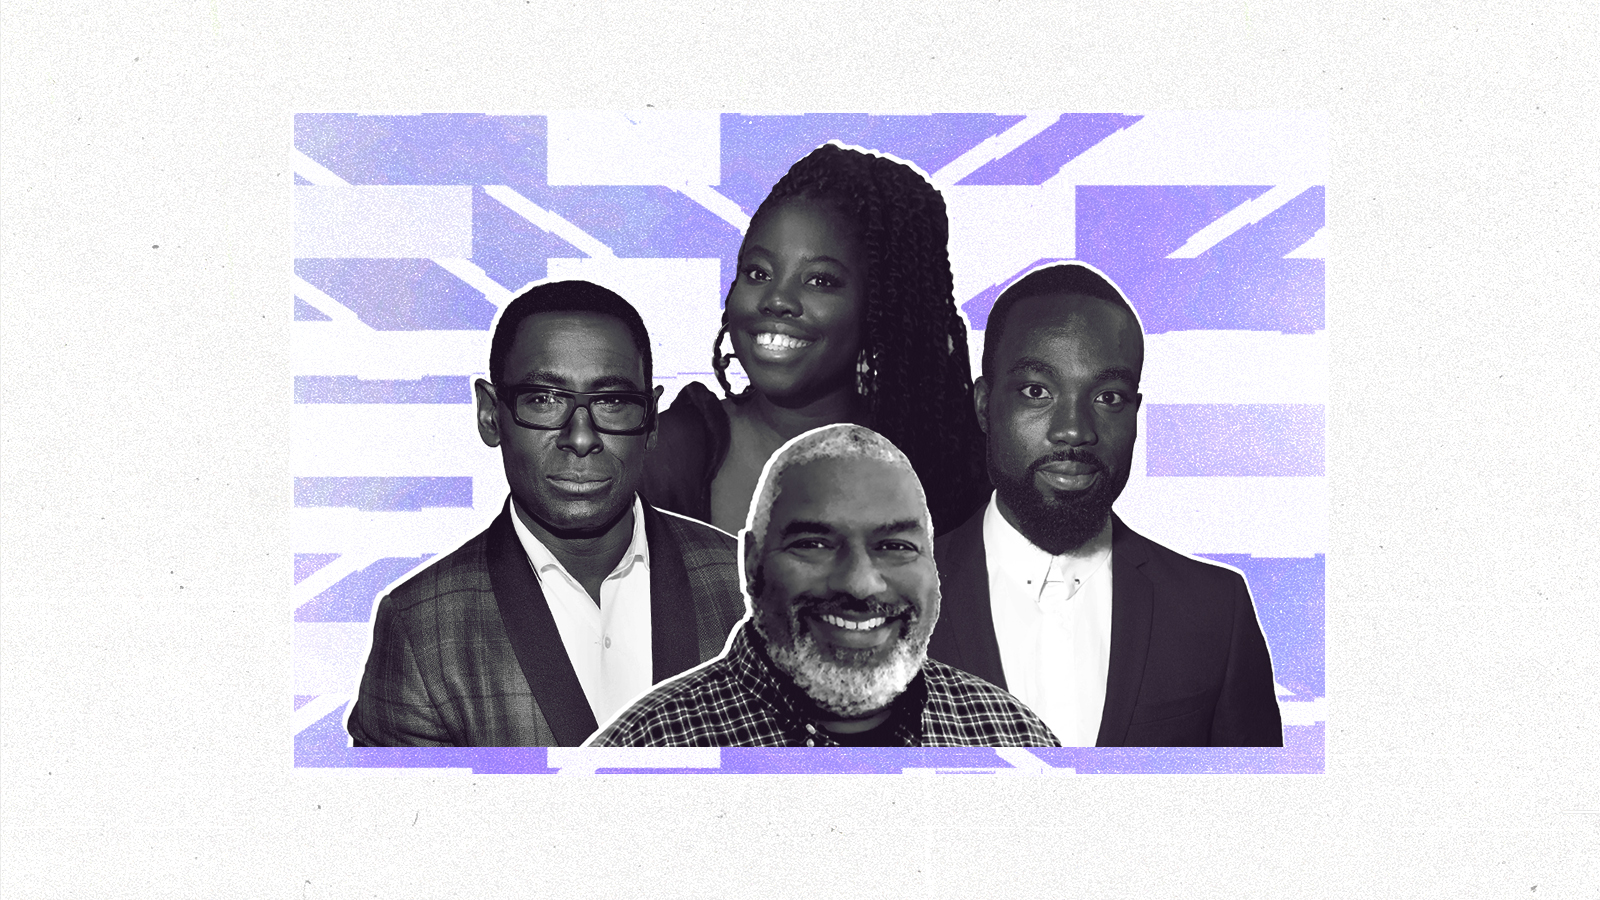 The film and TV industry has got Black characters wrong for decades. Meet the Black British creatives rewriting the script.